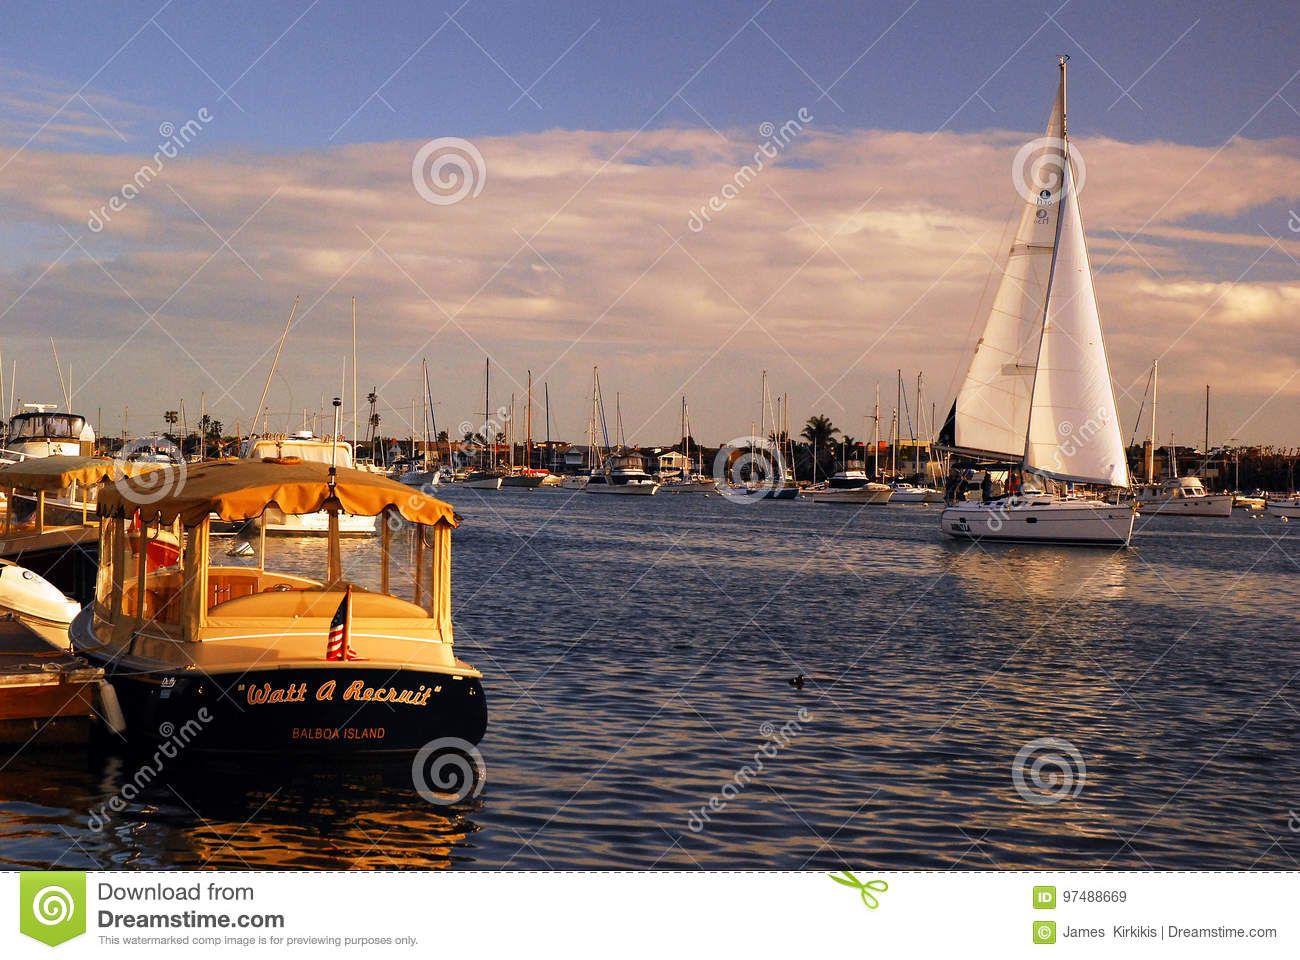 Sailing on a perfect day